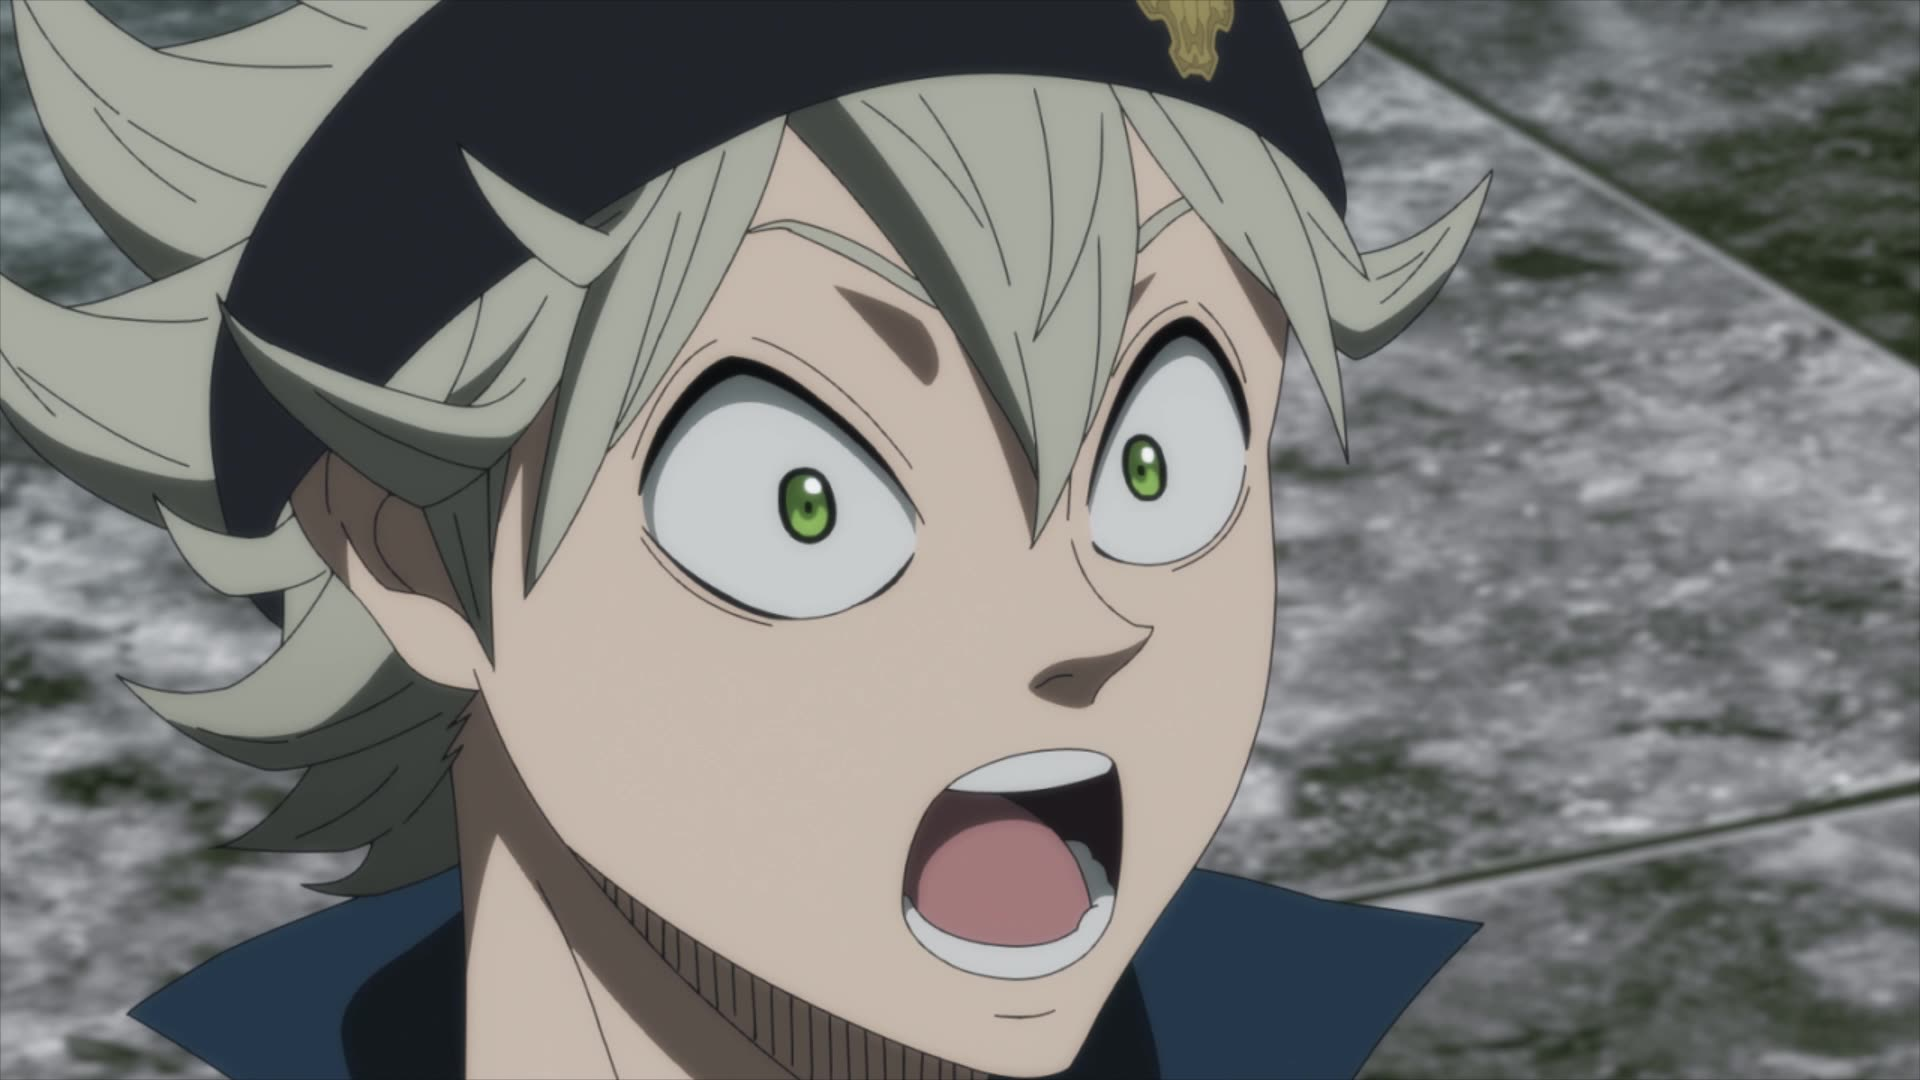 Black Clover Episode 94, New Future, - Watch on Crunchyroll